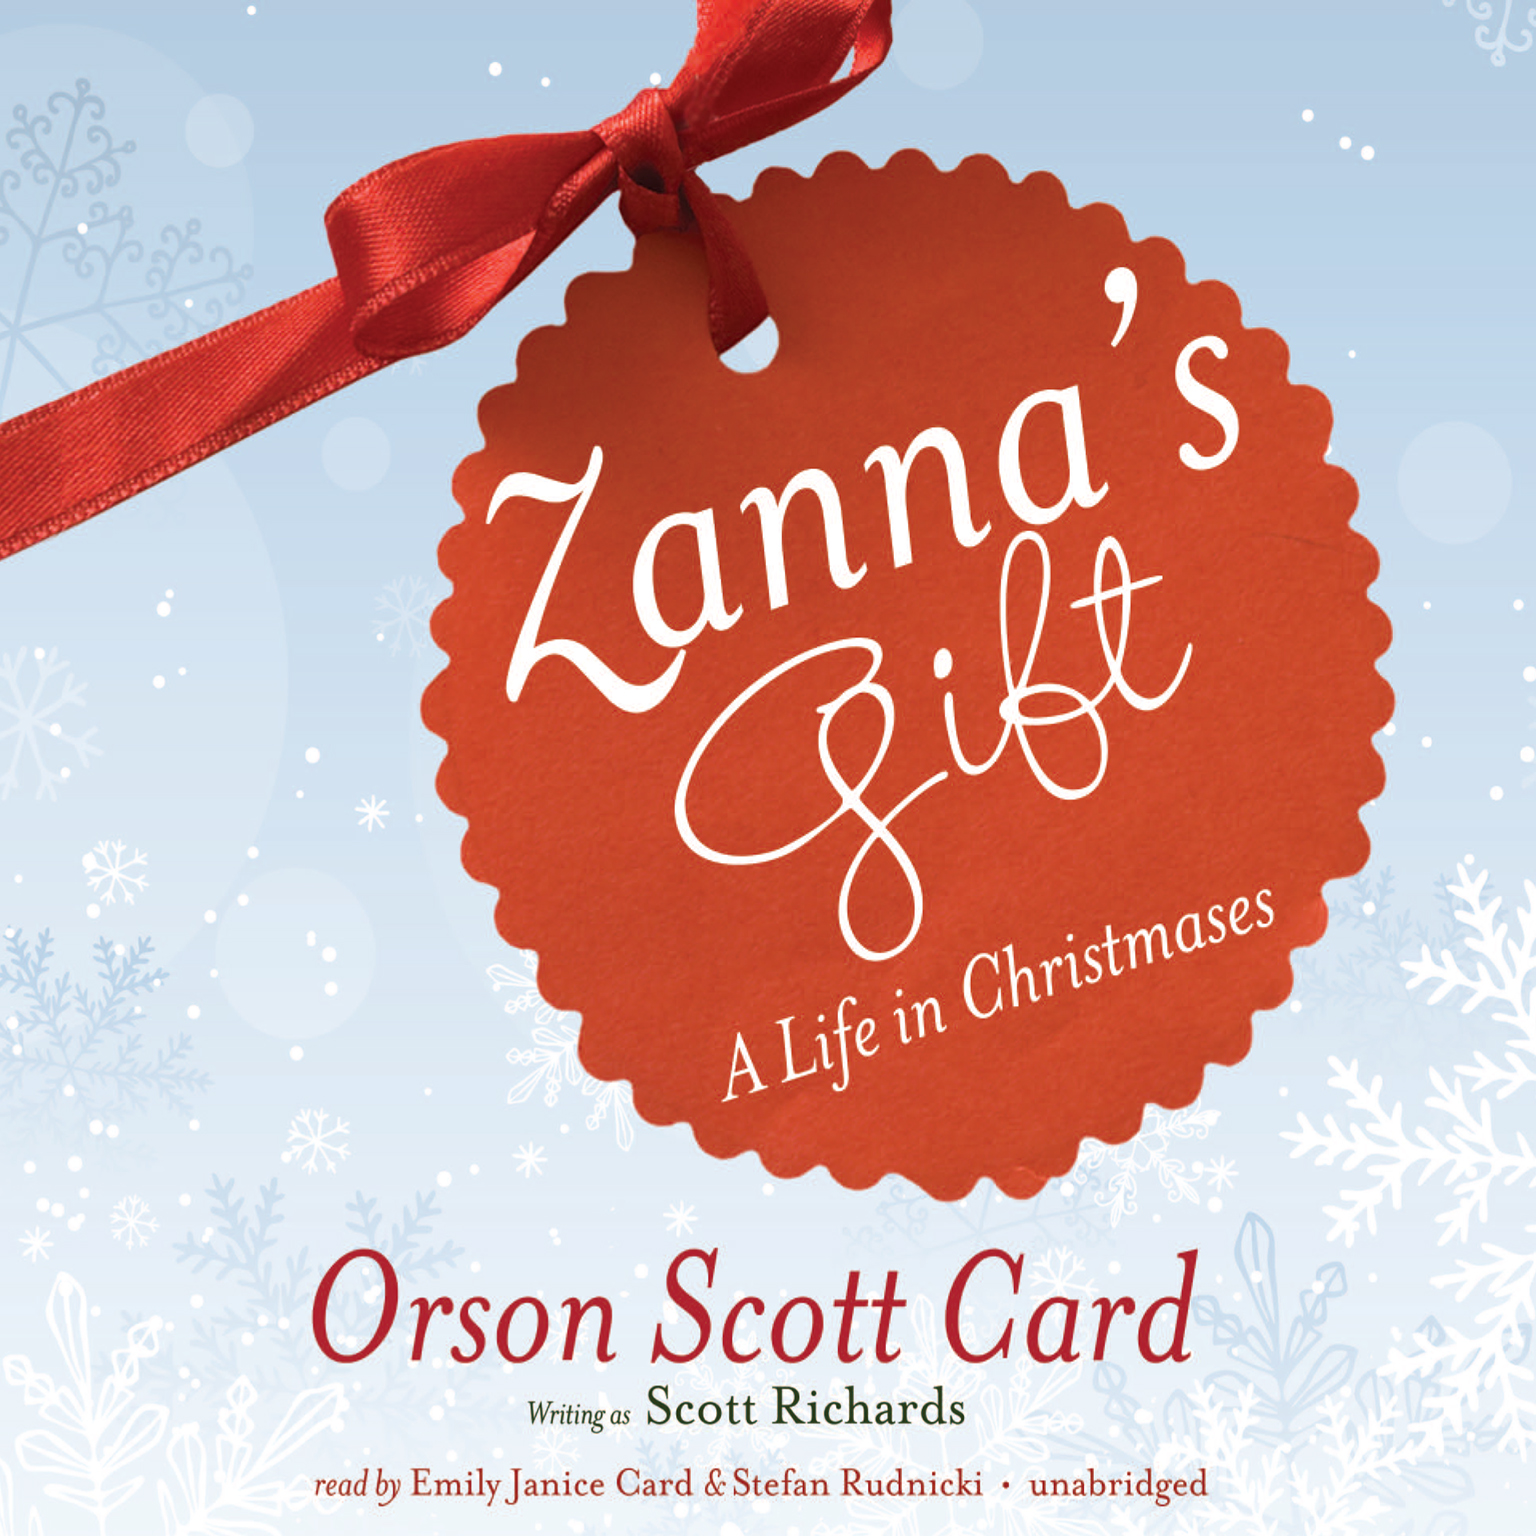 Printable Zanna's Gift: A Life in Christmases Audiobook Cover Art